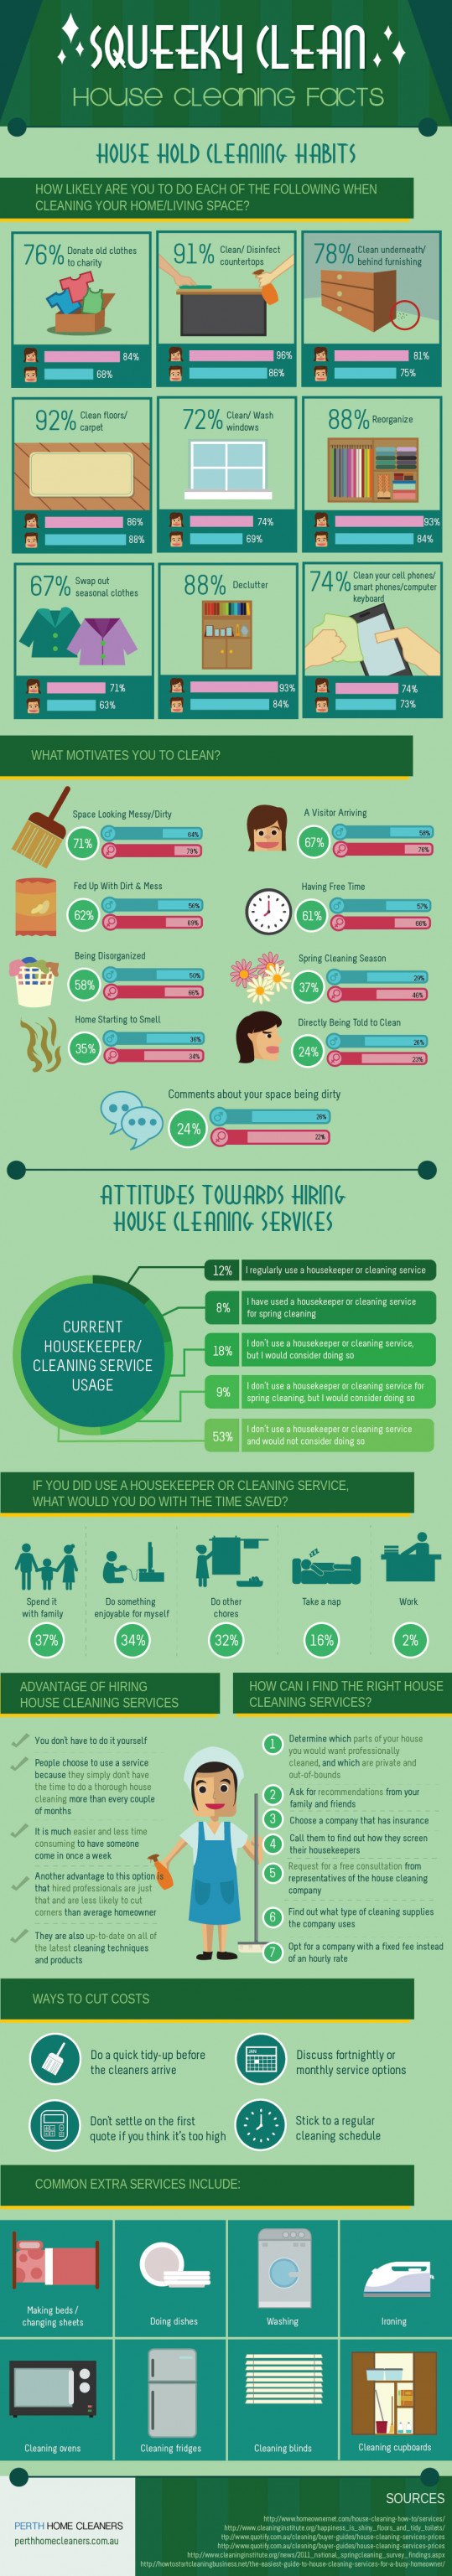 Squeaky Clean: House Cleaning Facts